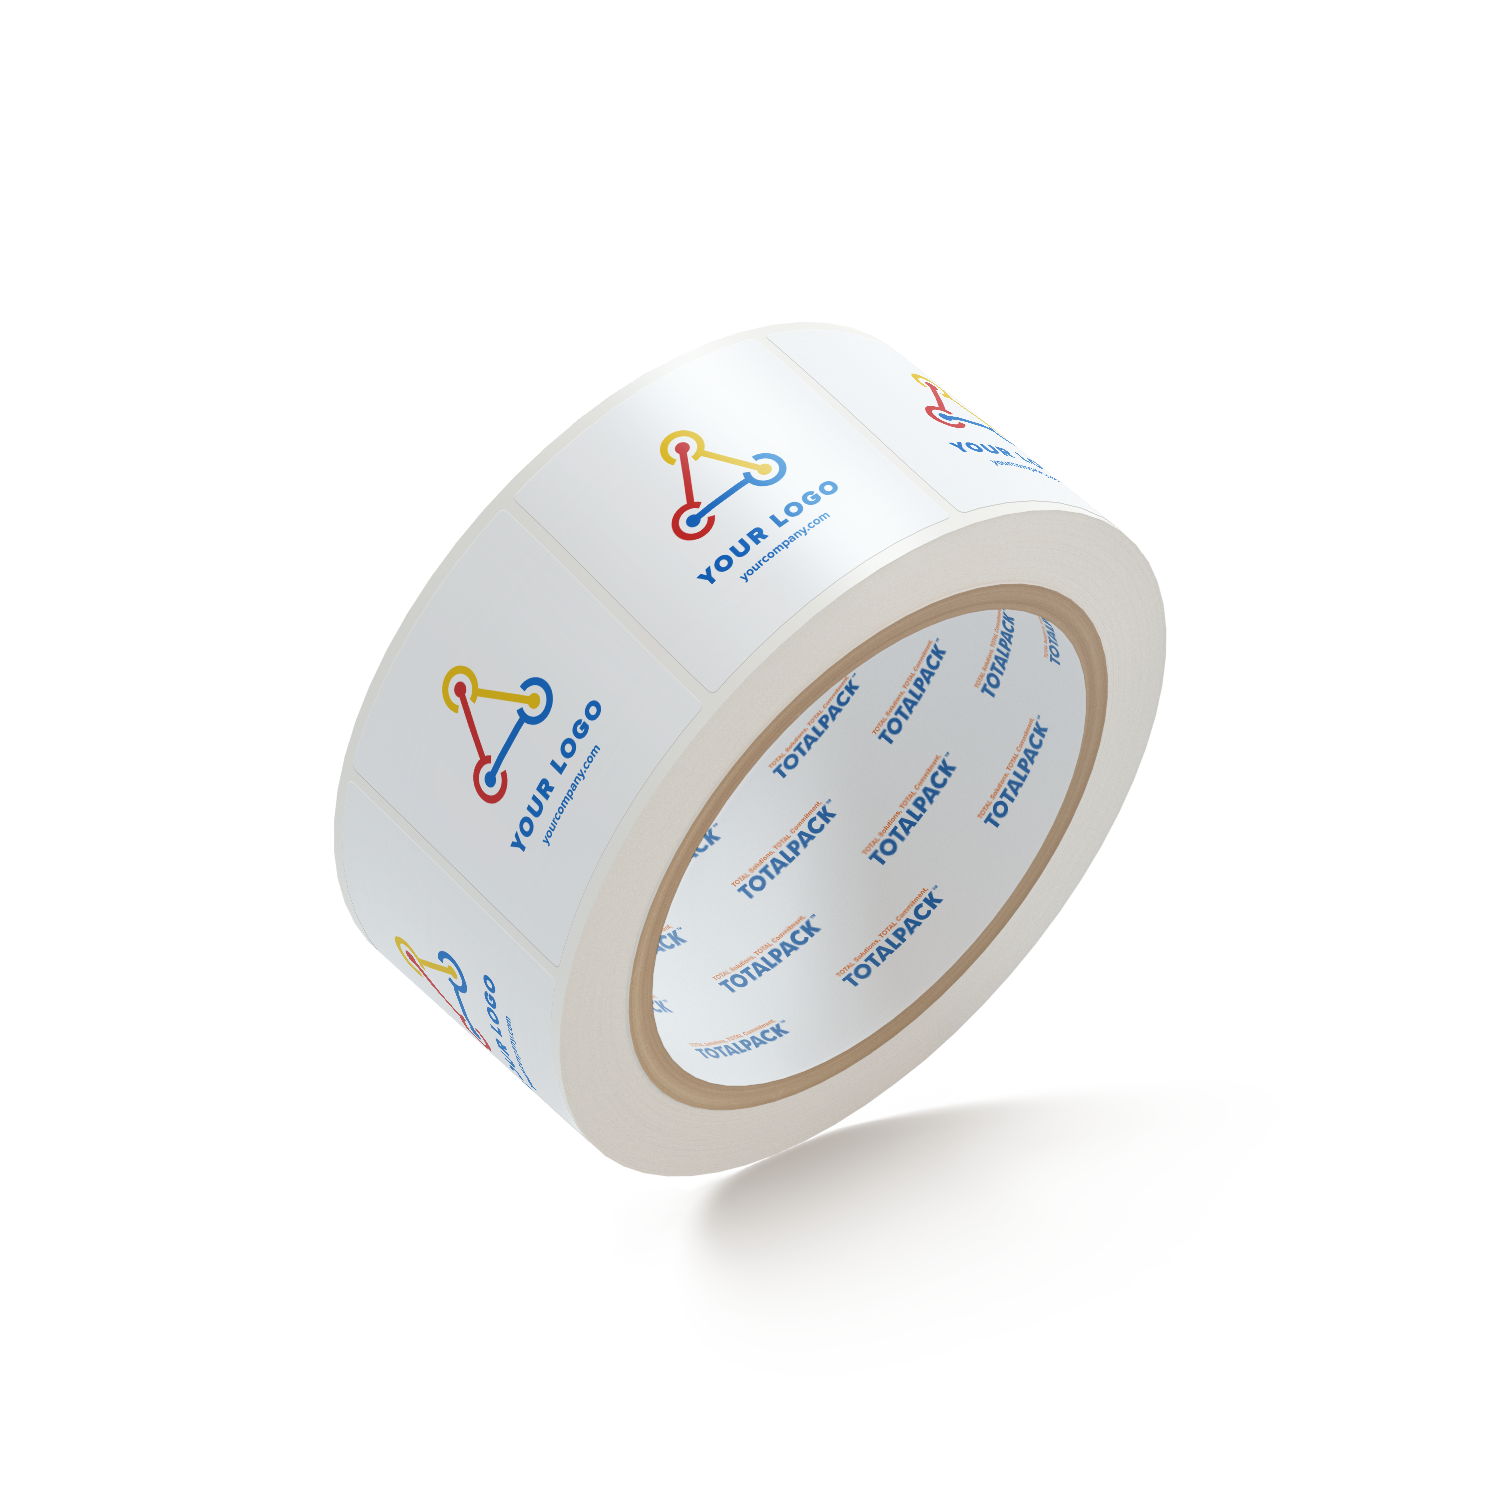 "Custom Square Stickers By TOTALPACK® - 2 x 2"" Round Corners White, 1000 Labels per Roll"